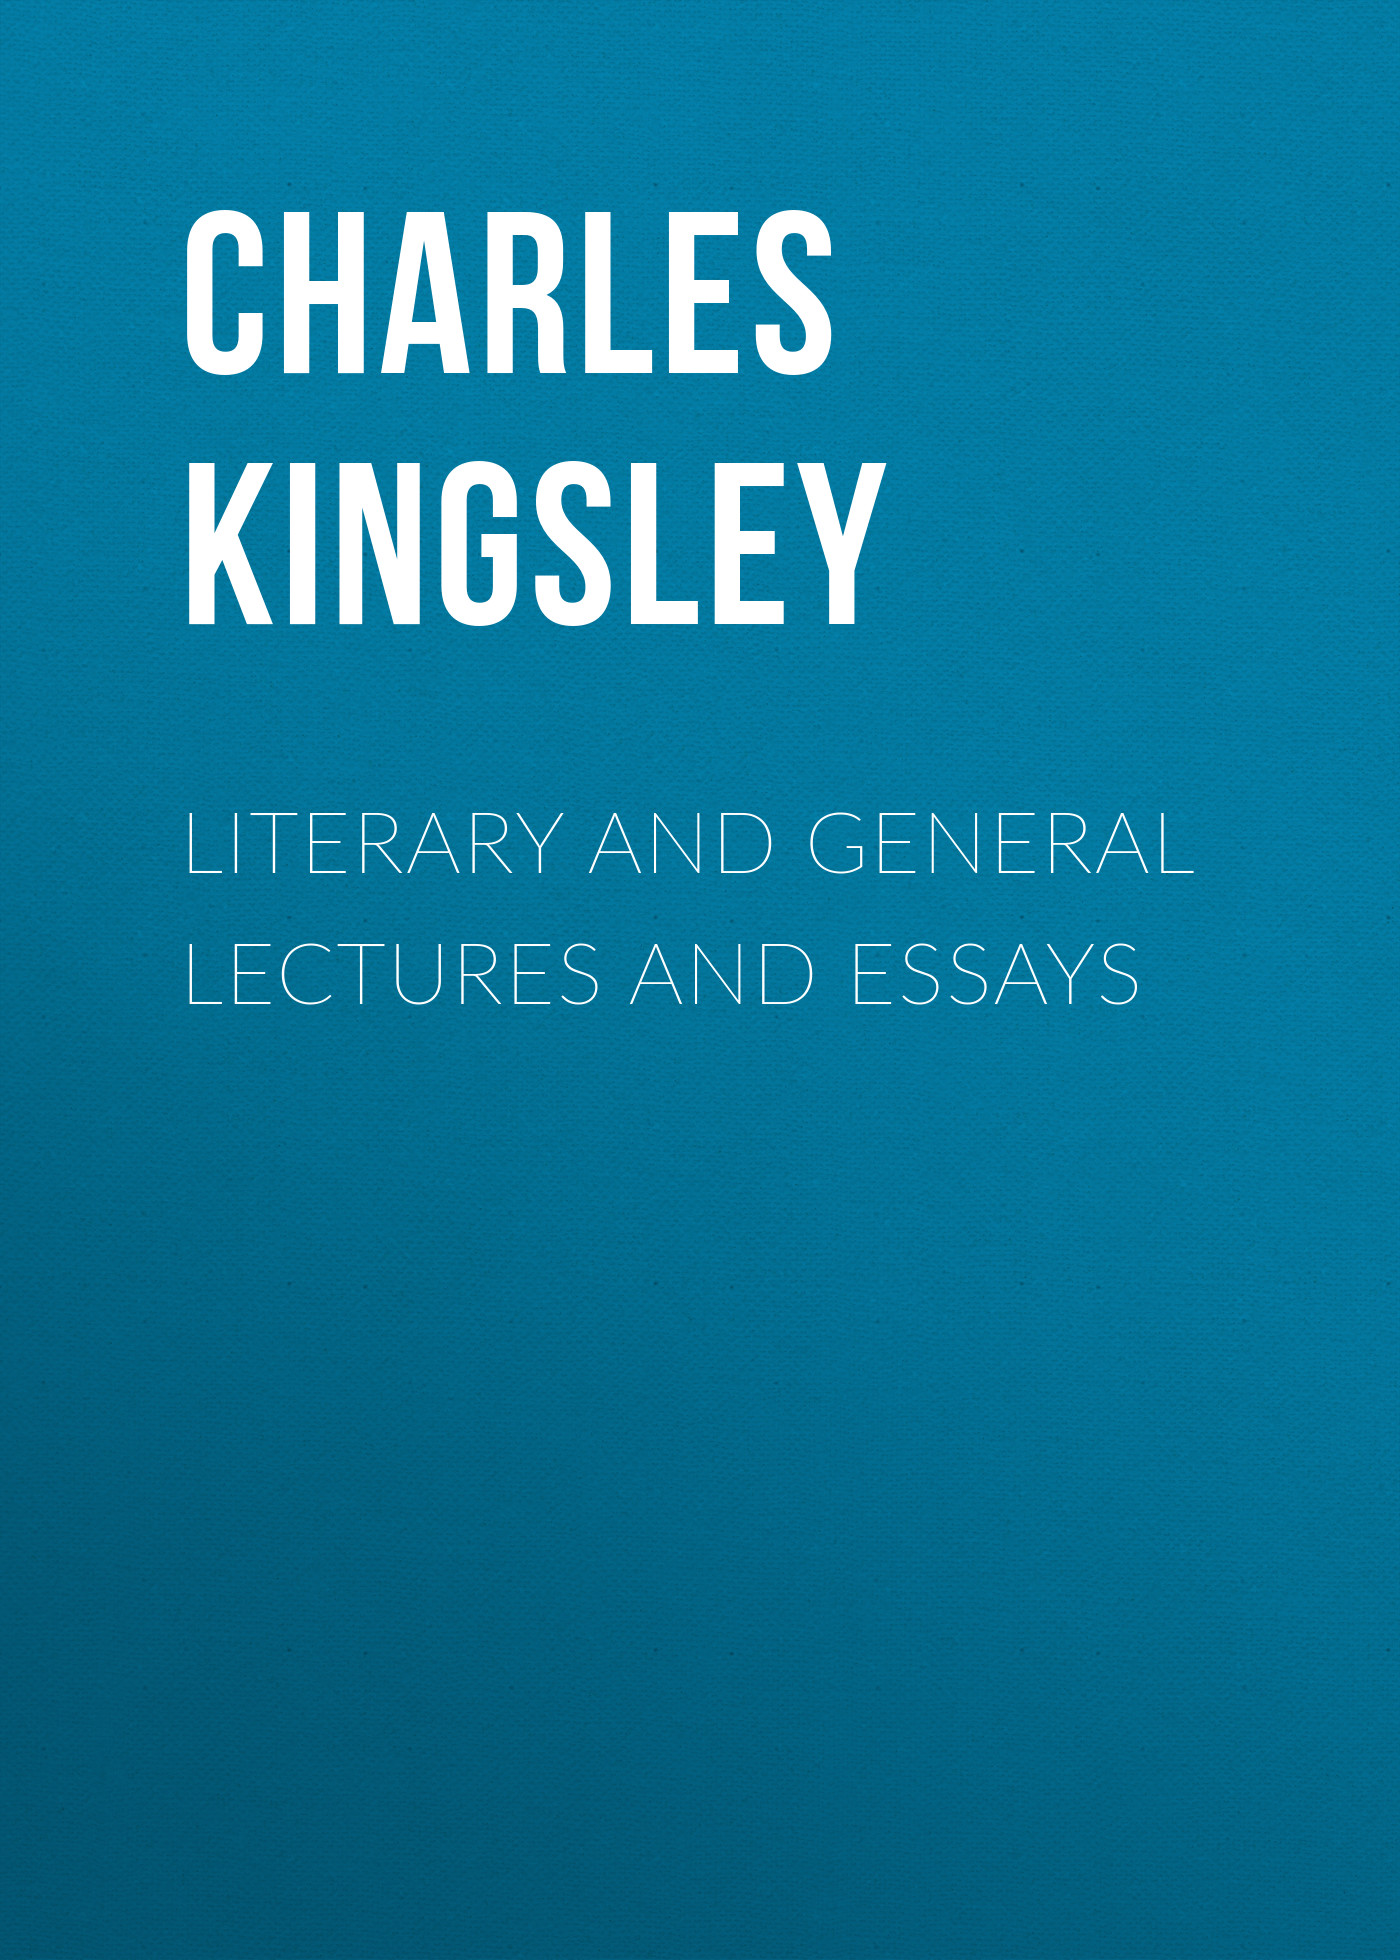 цены на Charles Kingsley Literary and General Lectures and Essays  в интернет-магазинах